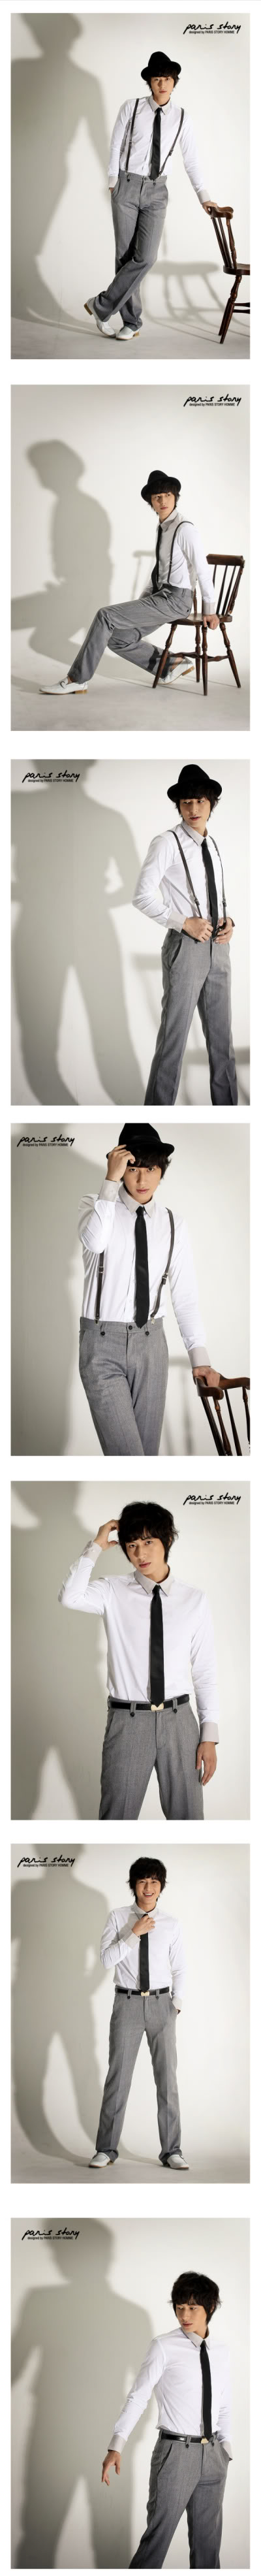 Lee Jee Hoon - Paris Story Hommes Collection I PH85-S-2